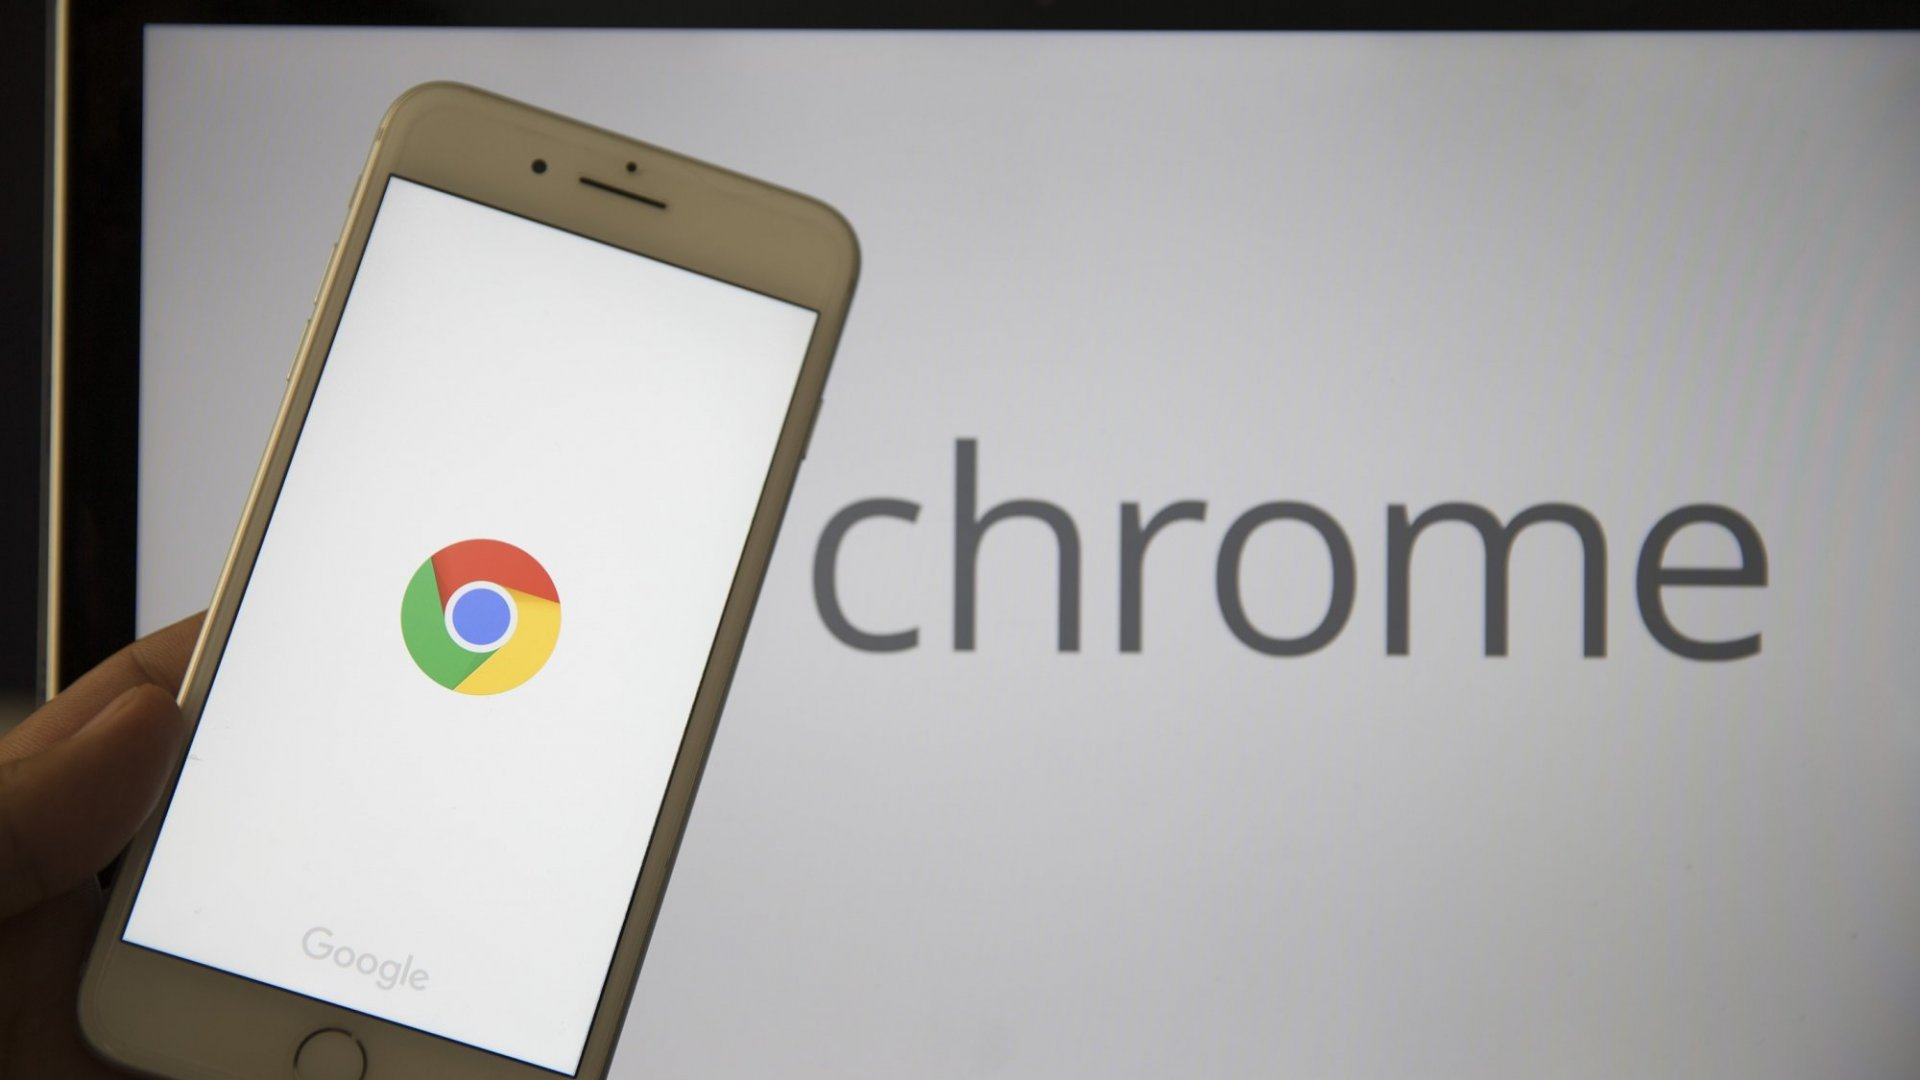 Google Says Chrome Will End Support for Third-Party Cookies That Track You. Here's Why That's Not All Good News